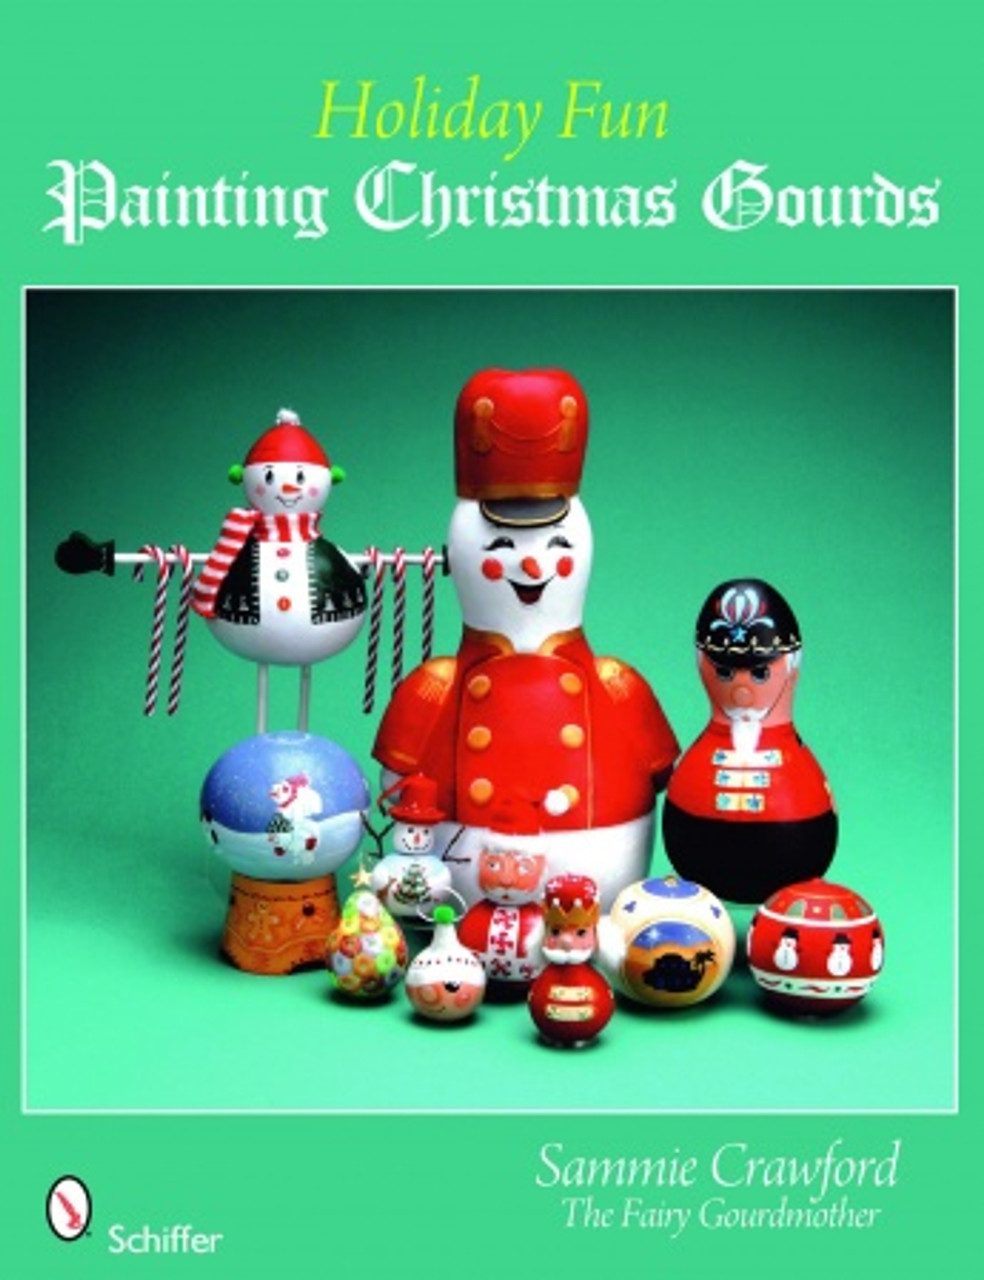 Holiday Fun Painting Christmas Gourds showing a wide variety of Christmas painted gourds.